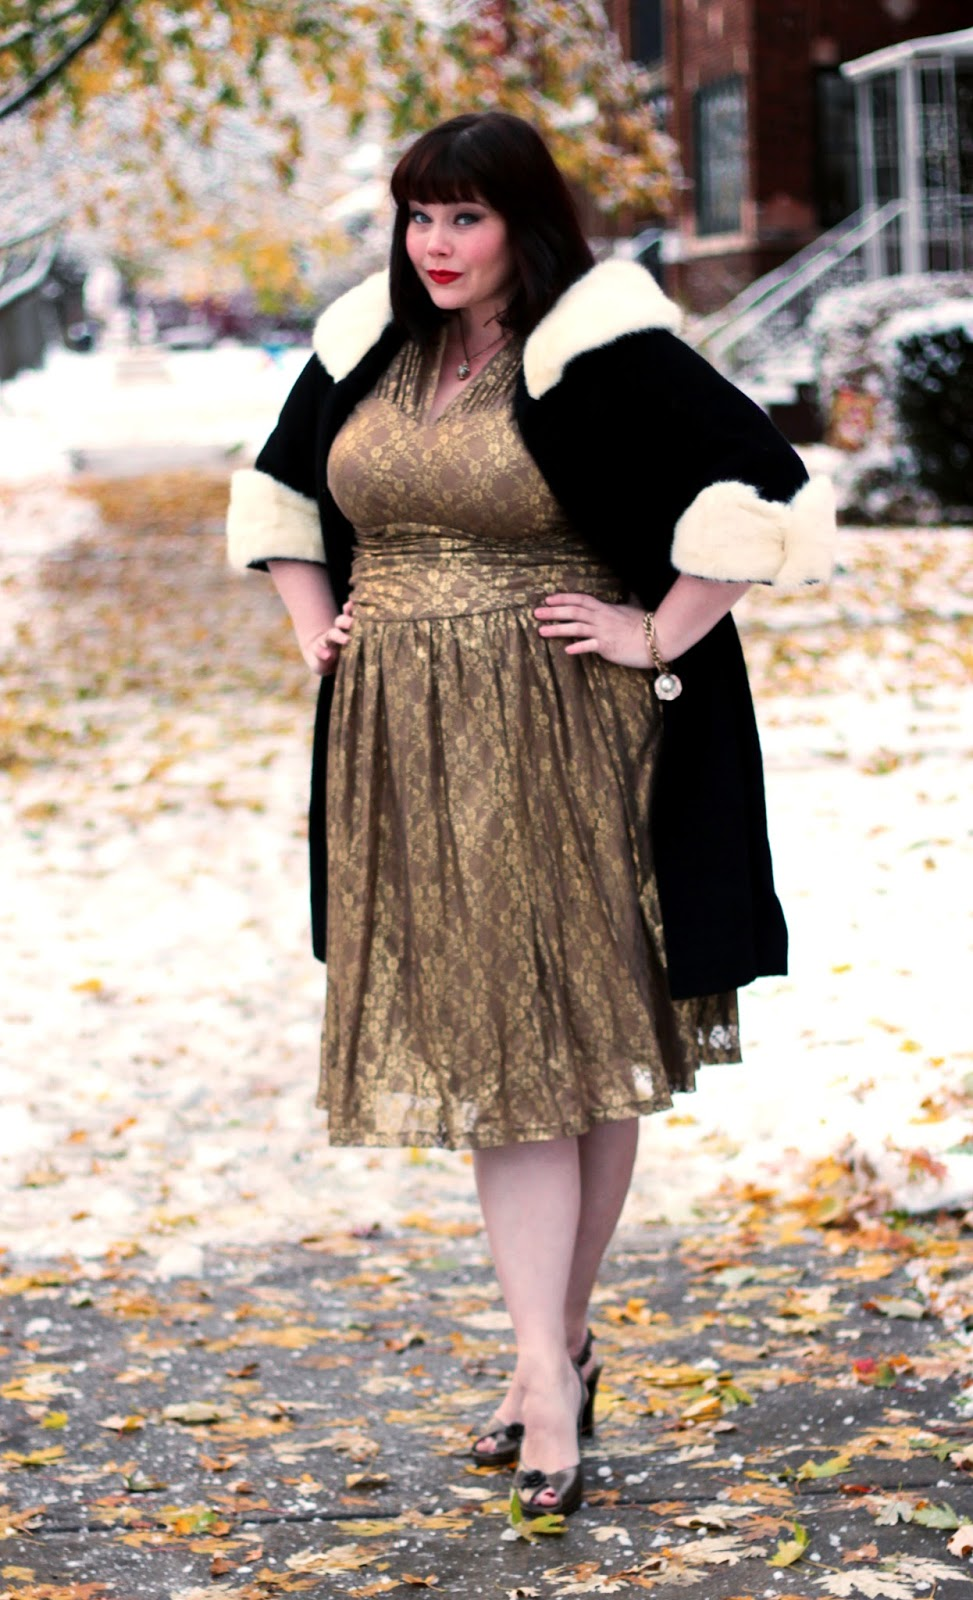 a04073ba059 Plus Size Blogger Amber from Style Plus Curves in Gold Lace Dress from  Kiyonna